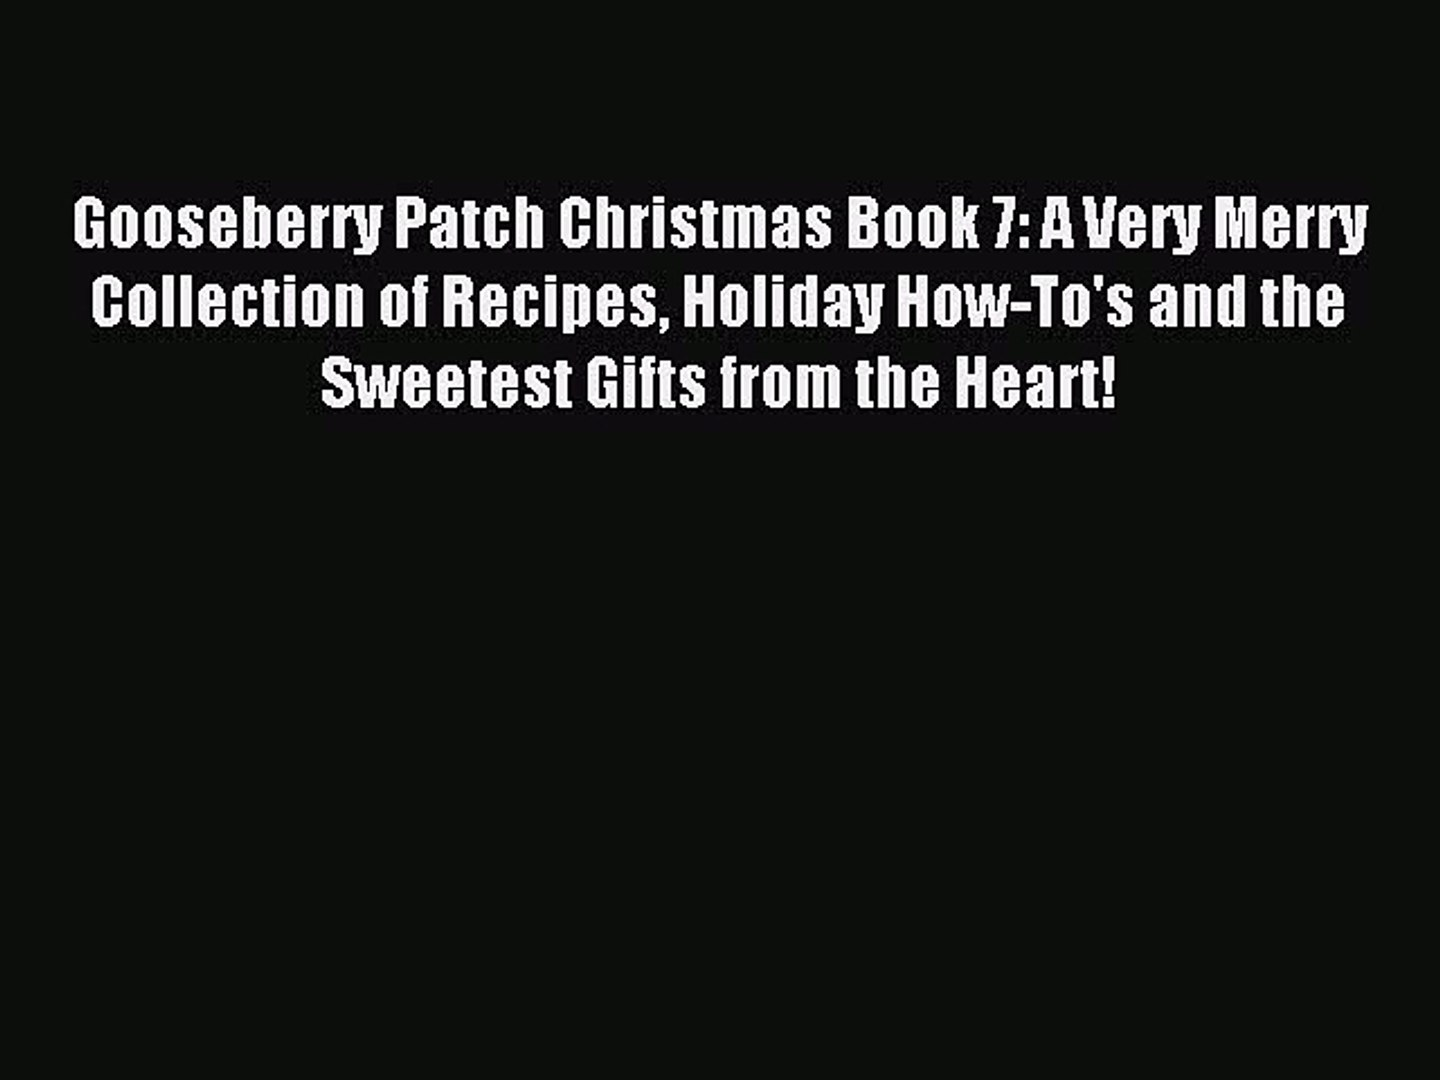 Read Gooseberry Patch Christmas Book 7: A Very Merry Collection of Recipes Holiday How-To's